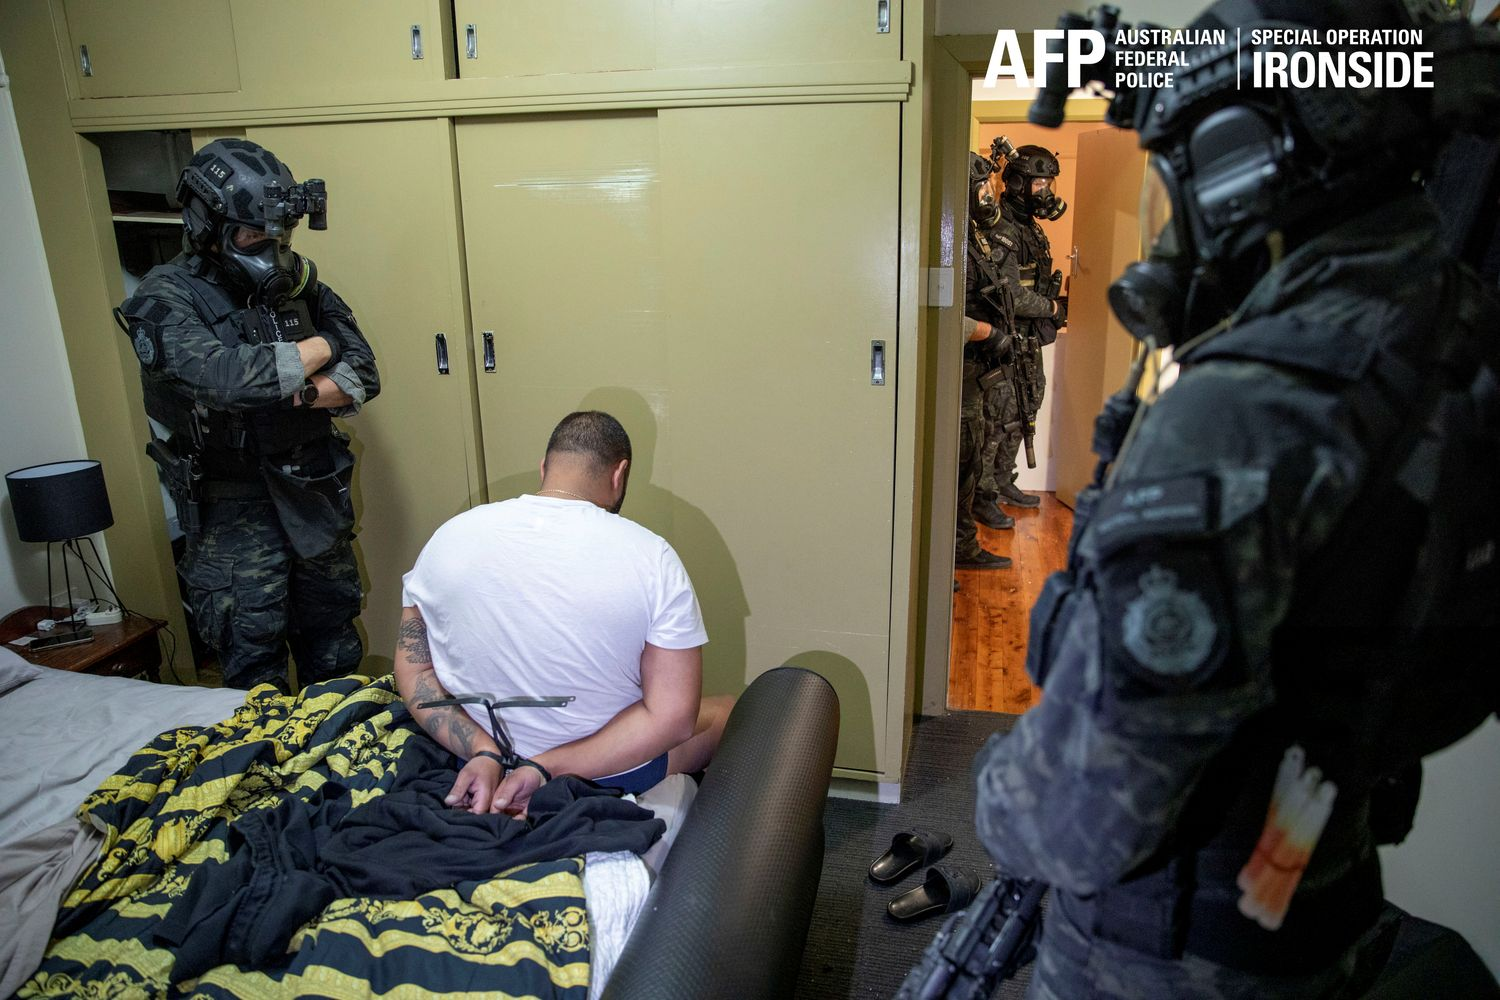 A person is detained by Australian Federal Police after its Operation Ironside against organised crime in this undated handout photo released Tuesday. (Australian Federal Police/Handout via Reuters)